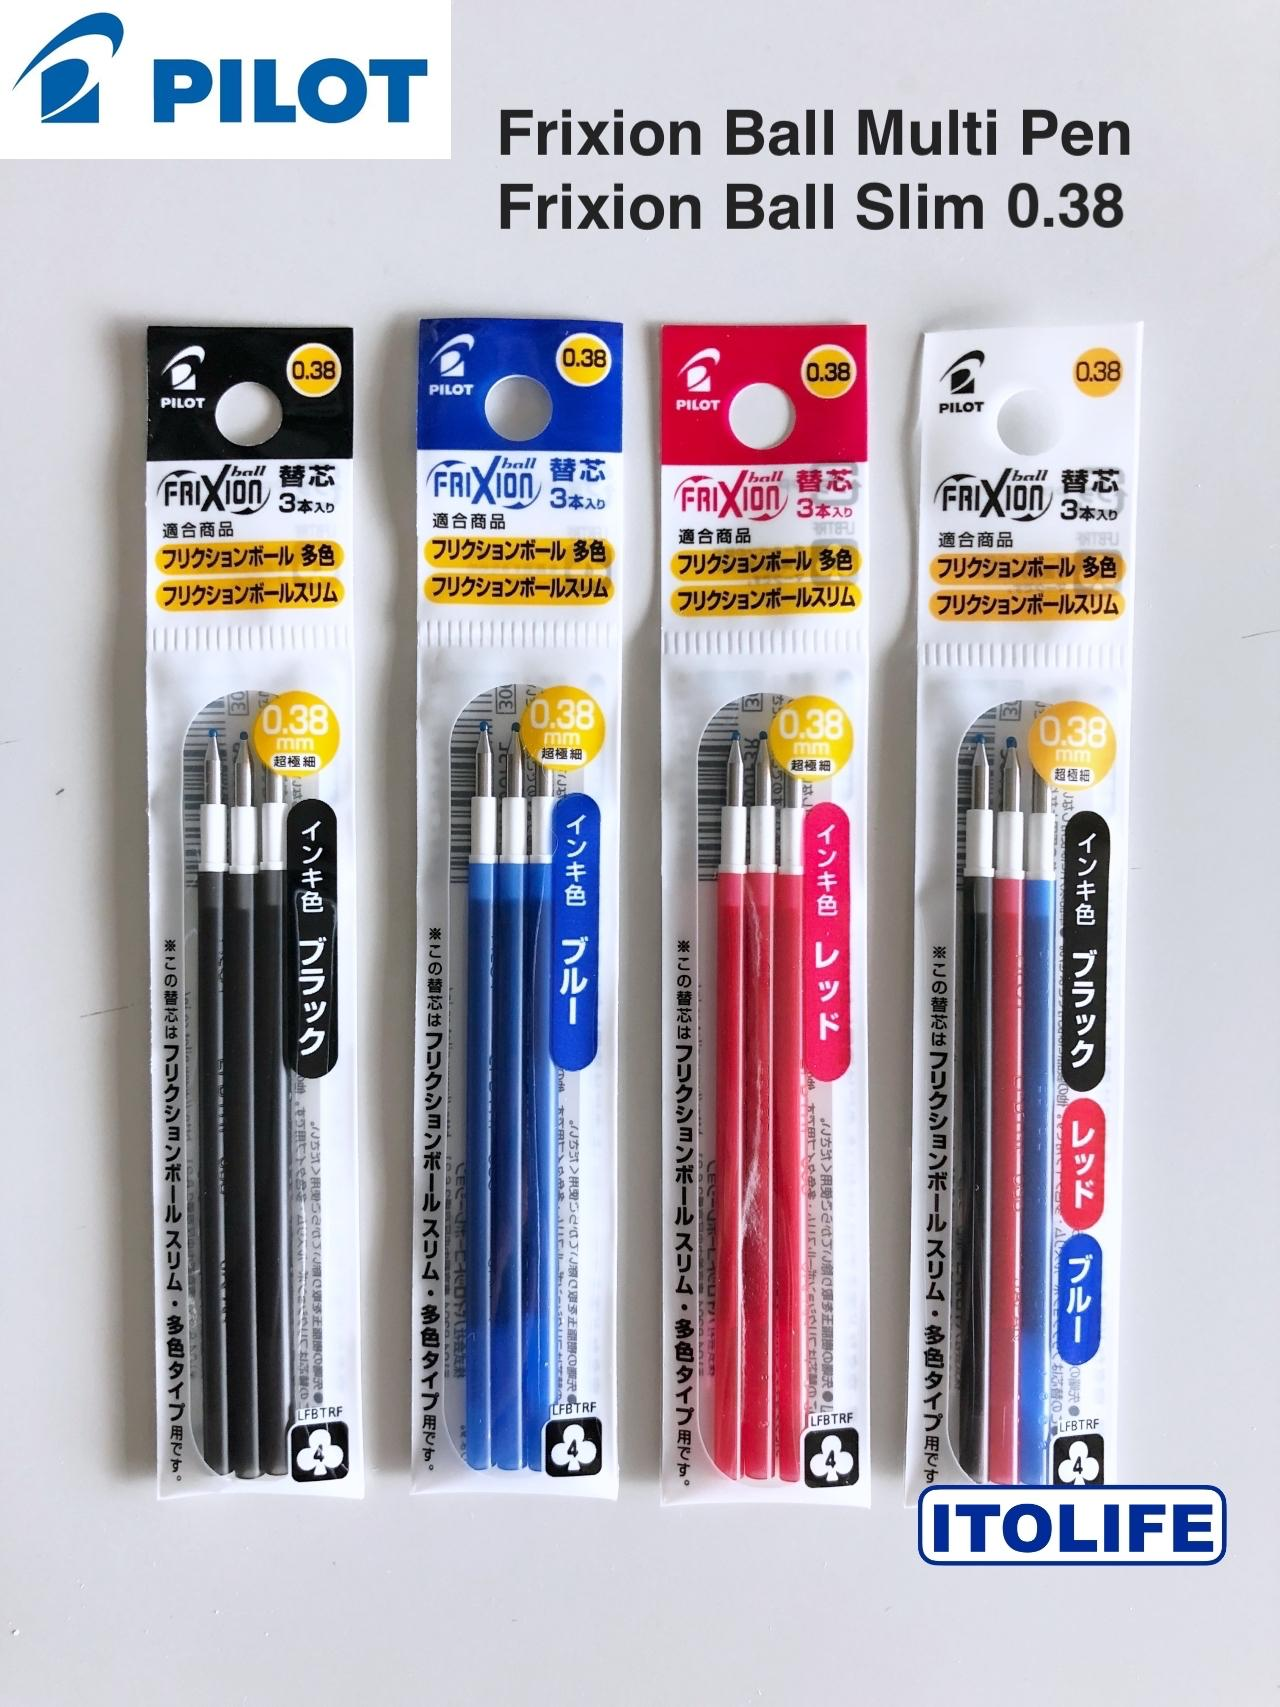 Ink Refills For Sale Pen Prices Brands Review In Ballpoint Tip Refill And Diagram Pilot Frixion Ball Slim 038 1 Pack